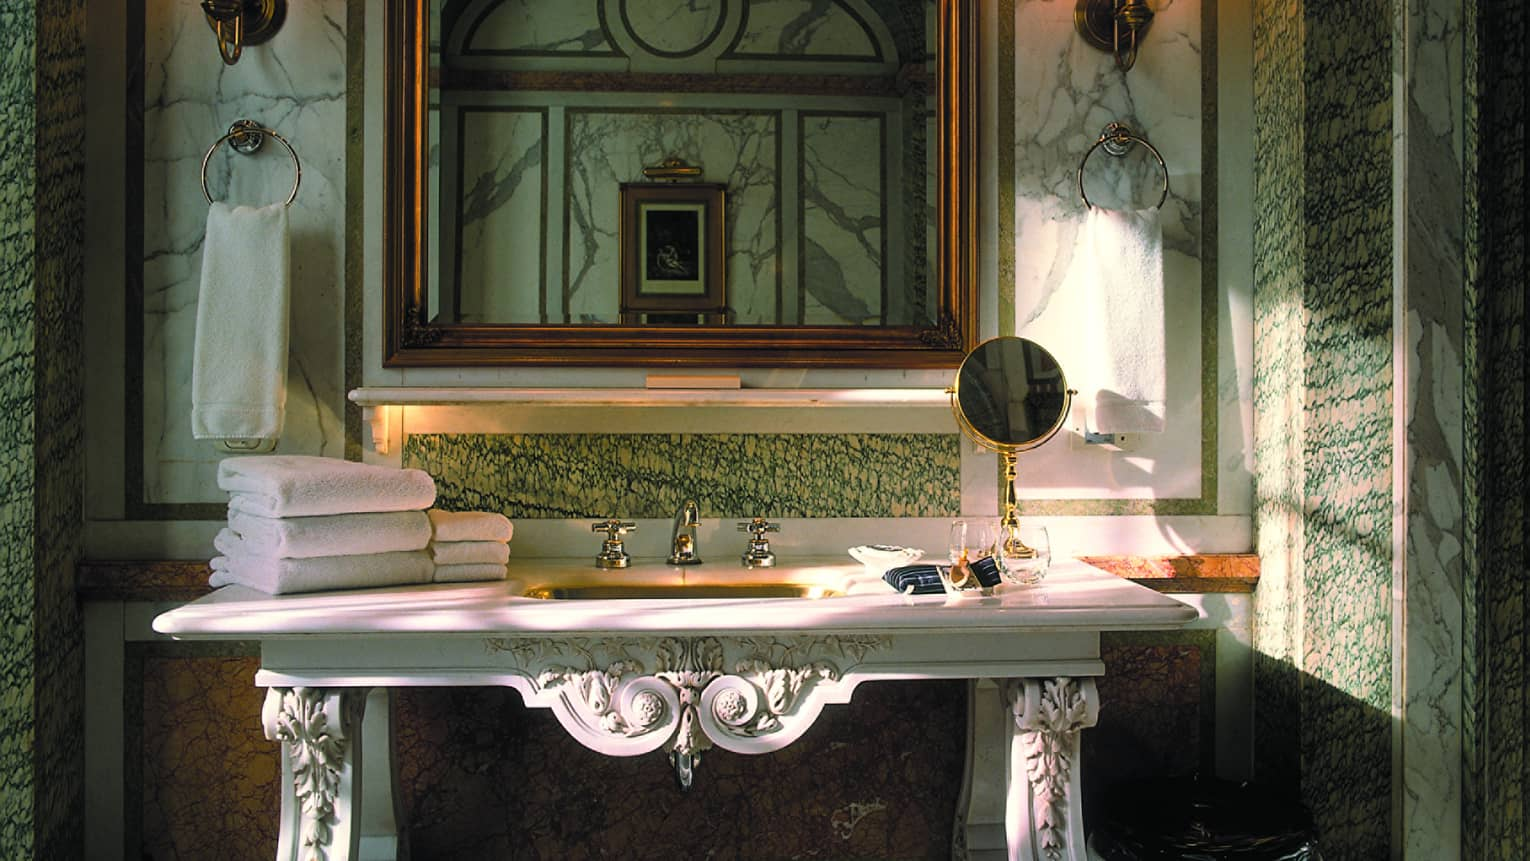 Elegant marble bathroom with decorative white vanity, folded white towels, mirror